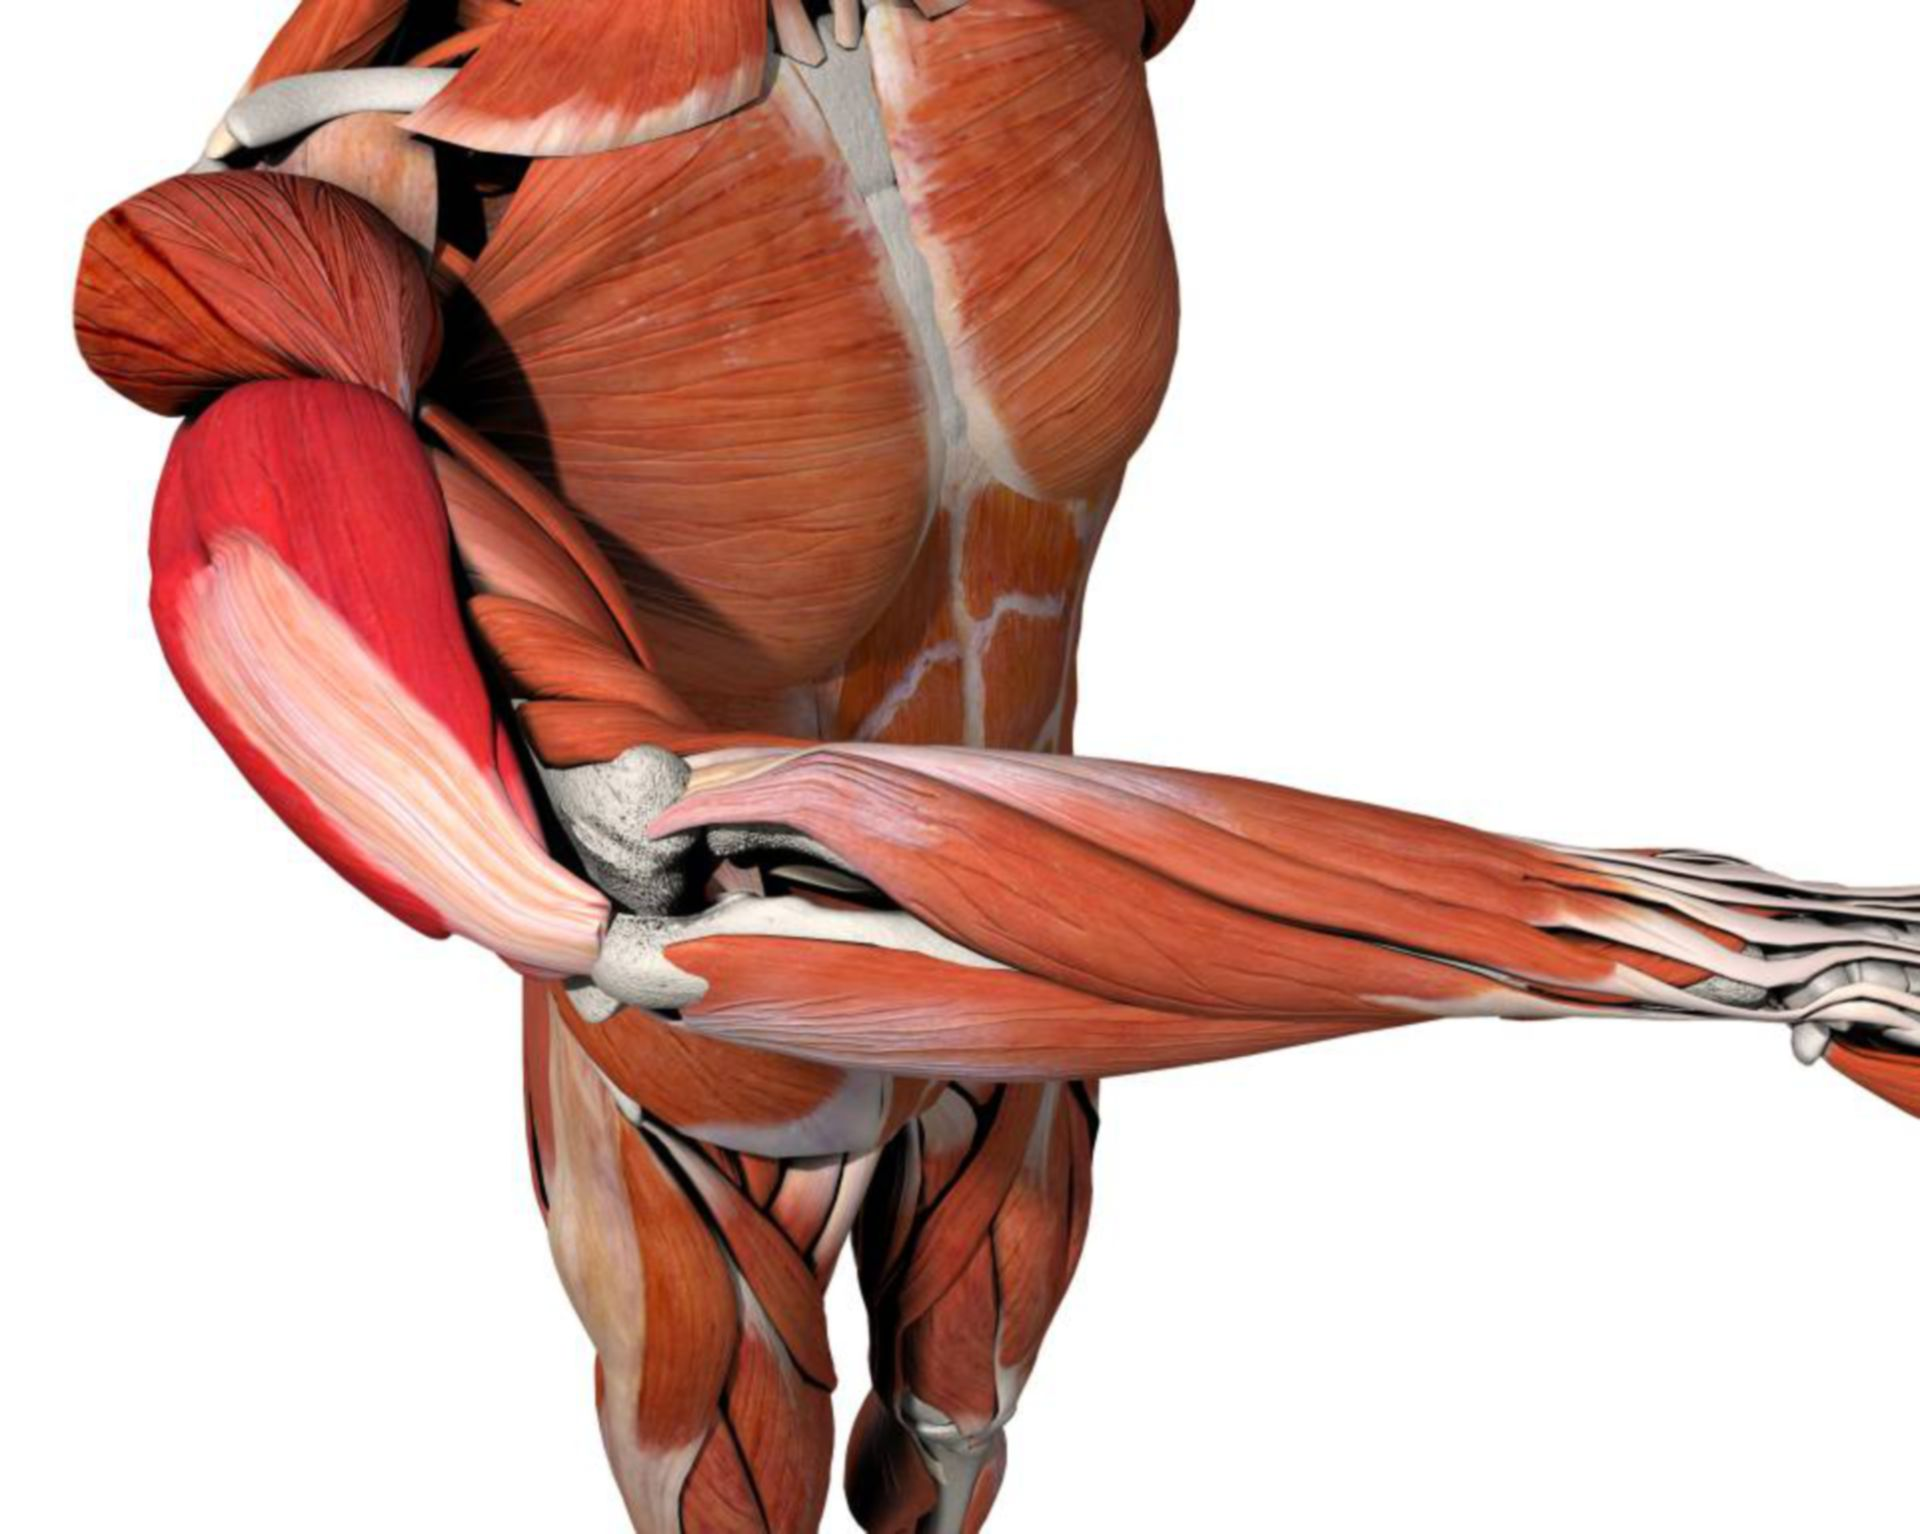 Musculus triceps brachii, triceps muscle